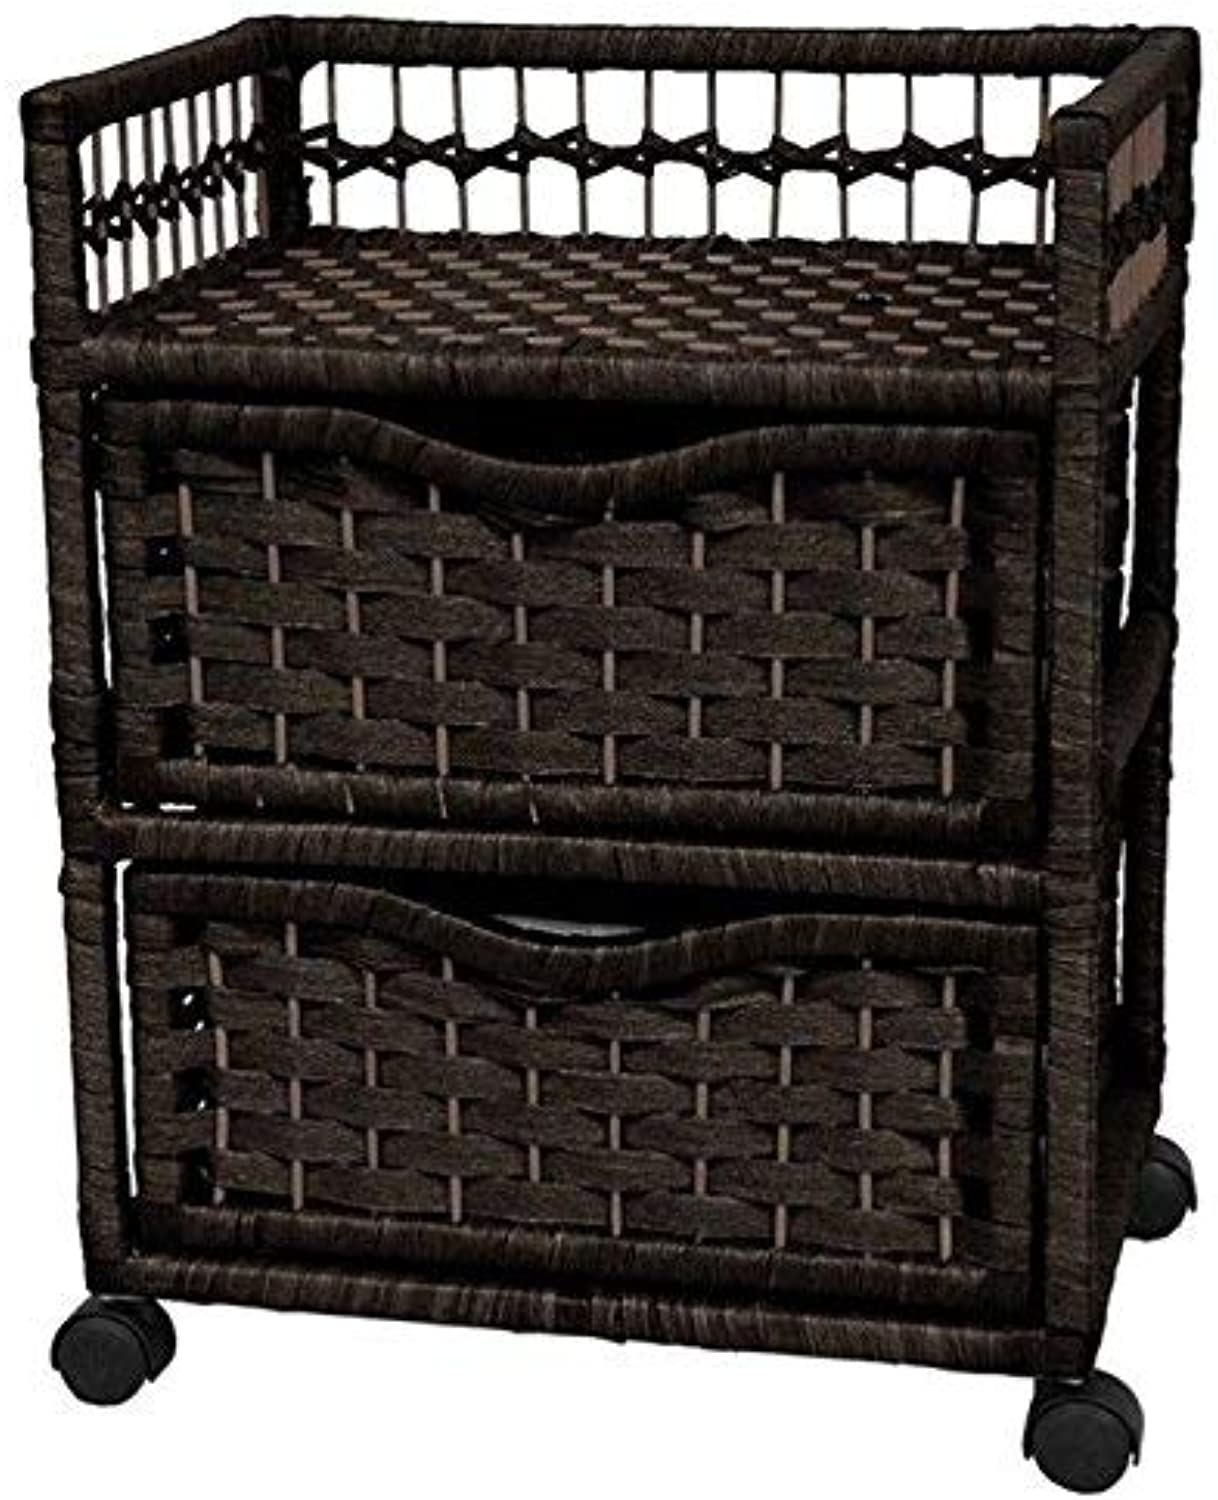 Oriental Furniture Best Price End Tables, 22-Inch Japanese Design 2 Drawer Nightstand with Swivel Casters, Black